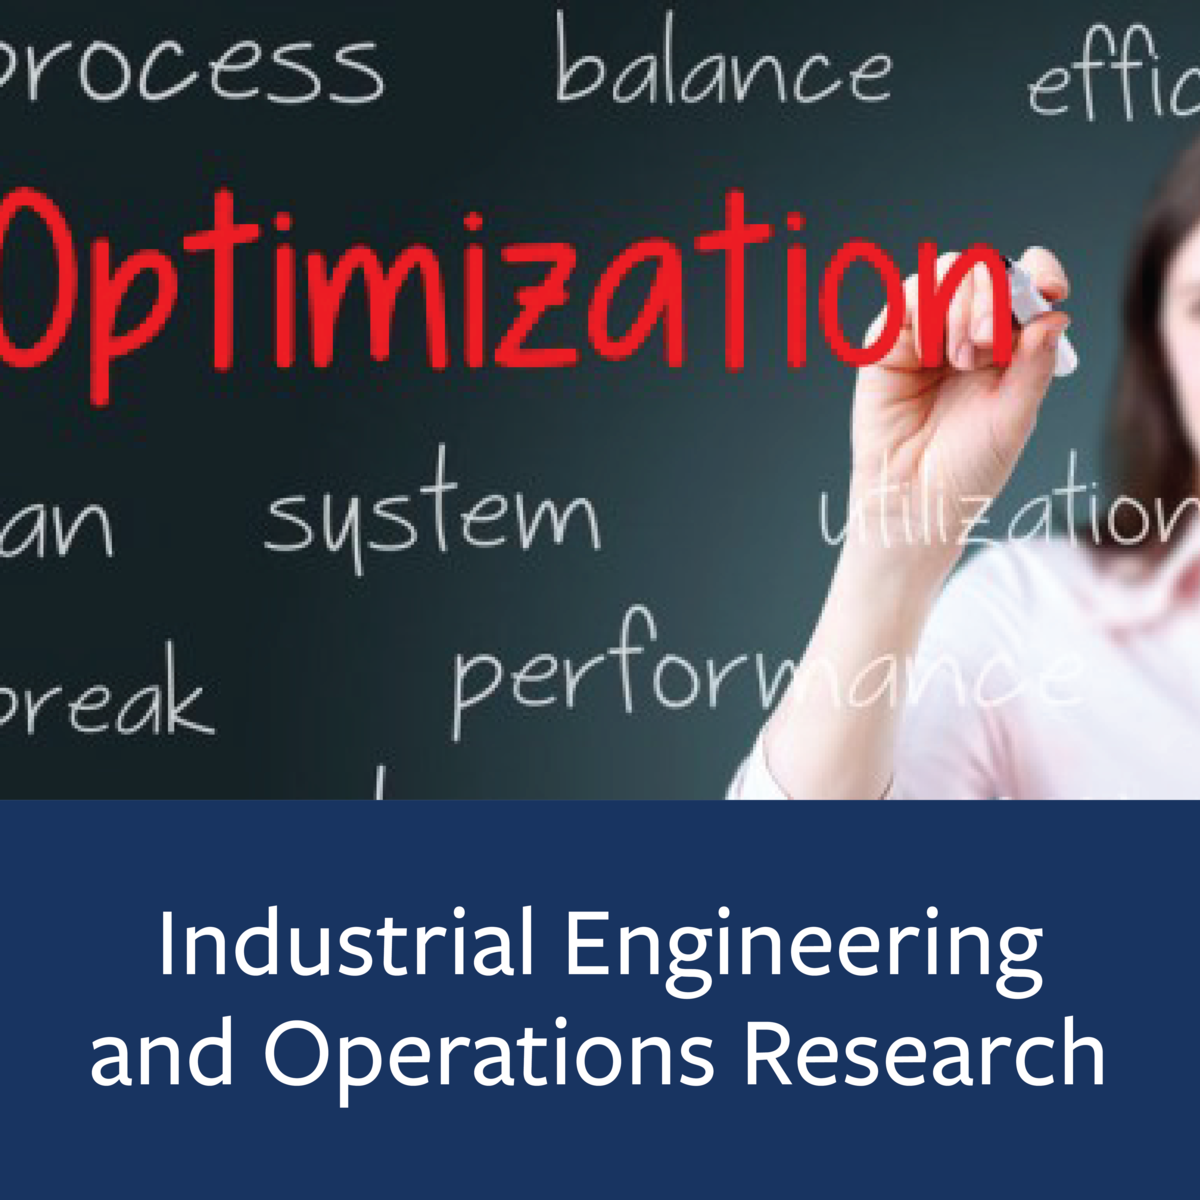 Industrial Engineering and Operations Research Major Map